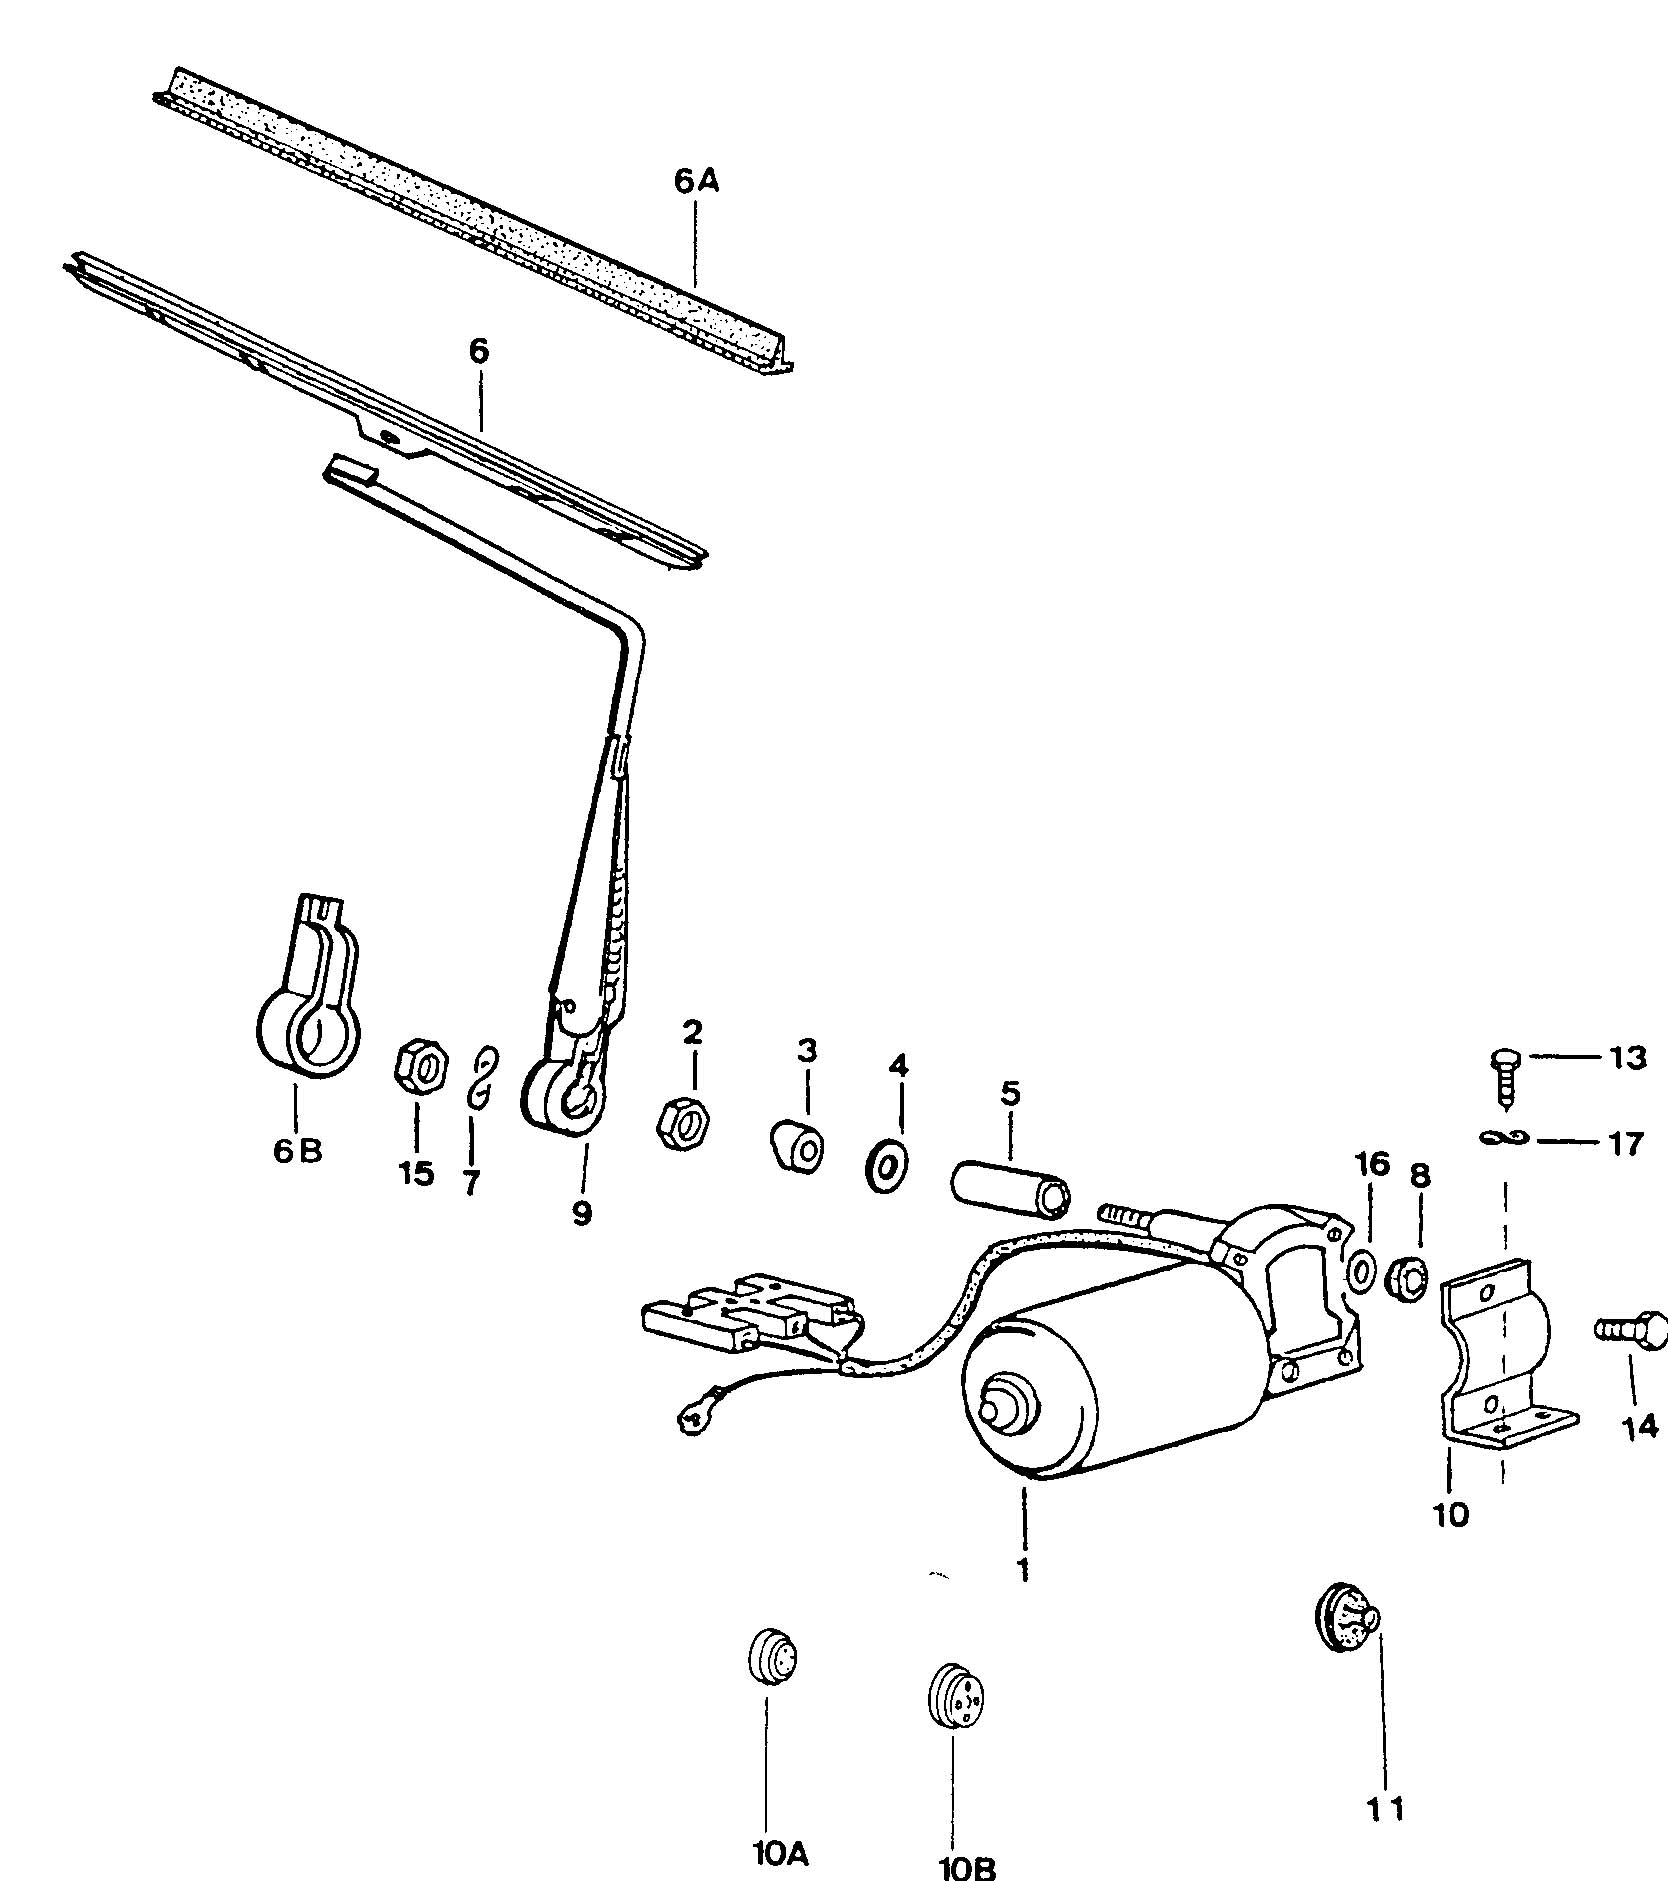 Service manual [Replace Wiper Arm 1990 Volkswagen Fox